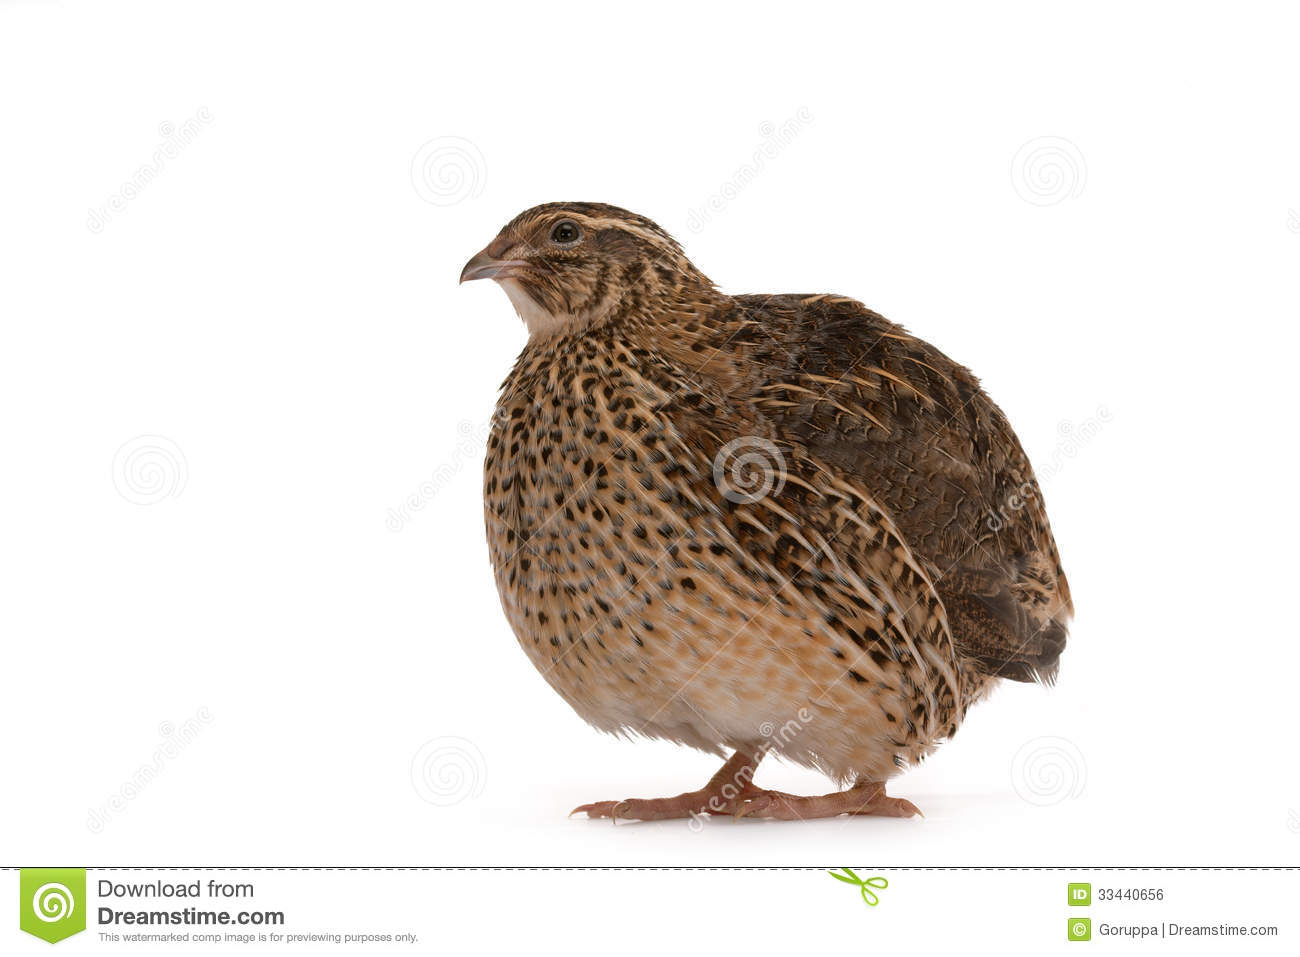 ... quail on a white background. A bird that lays the Golden eggs